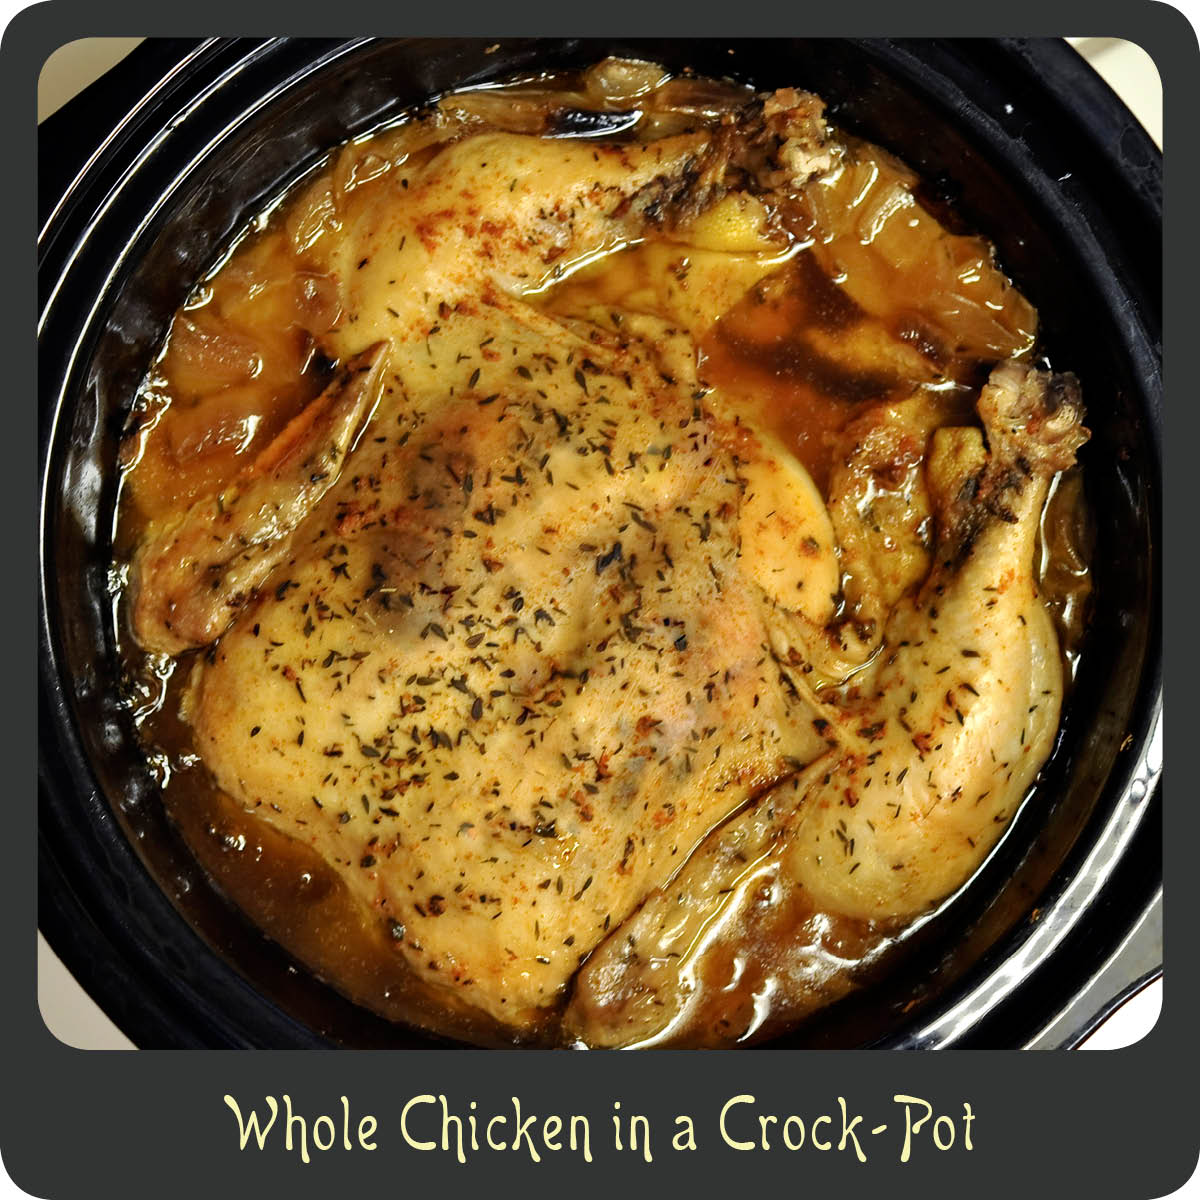 Crockpot Chicken Recipes Easy: Good Health: 2 Easy Whole Chicken Crock Pot Recipes